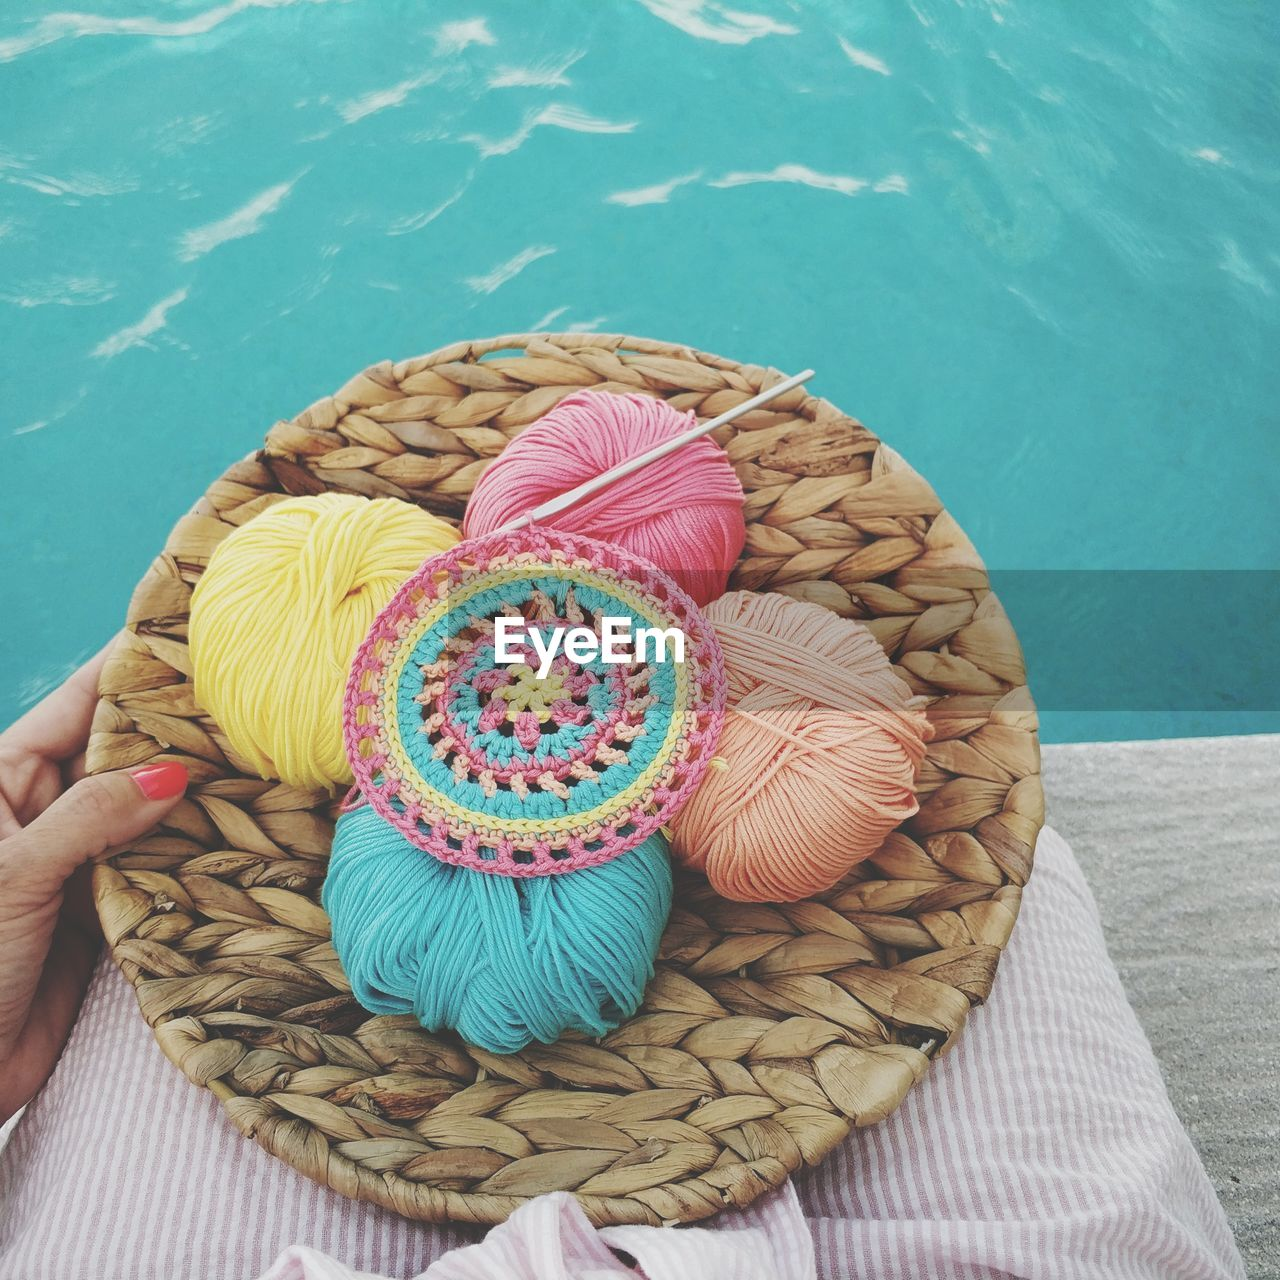 Midsection Of Woman Holding Wools In Container While Sitting At Poolside